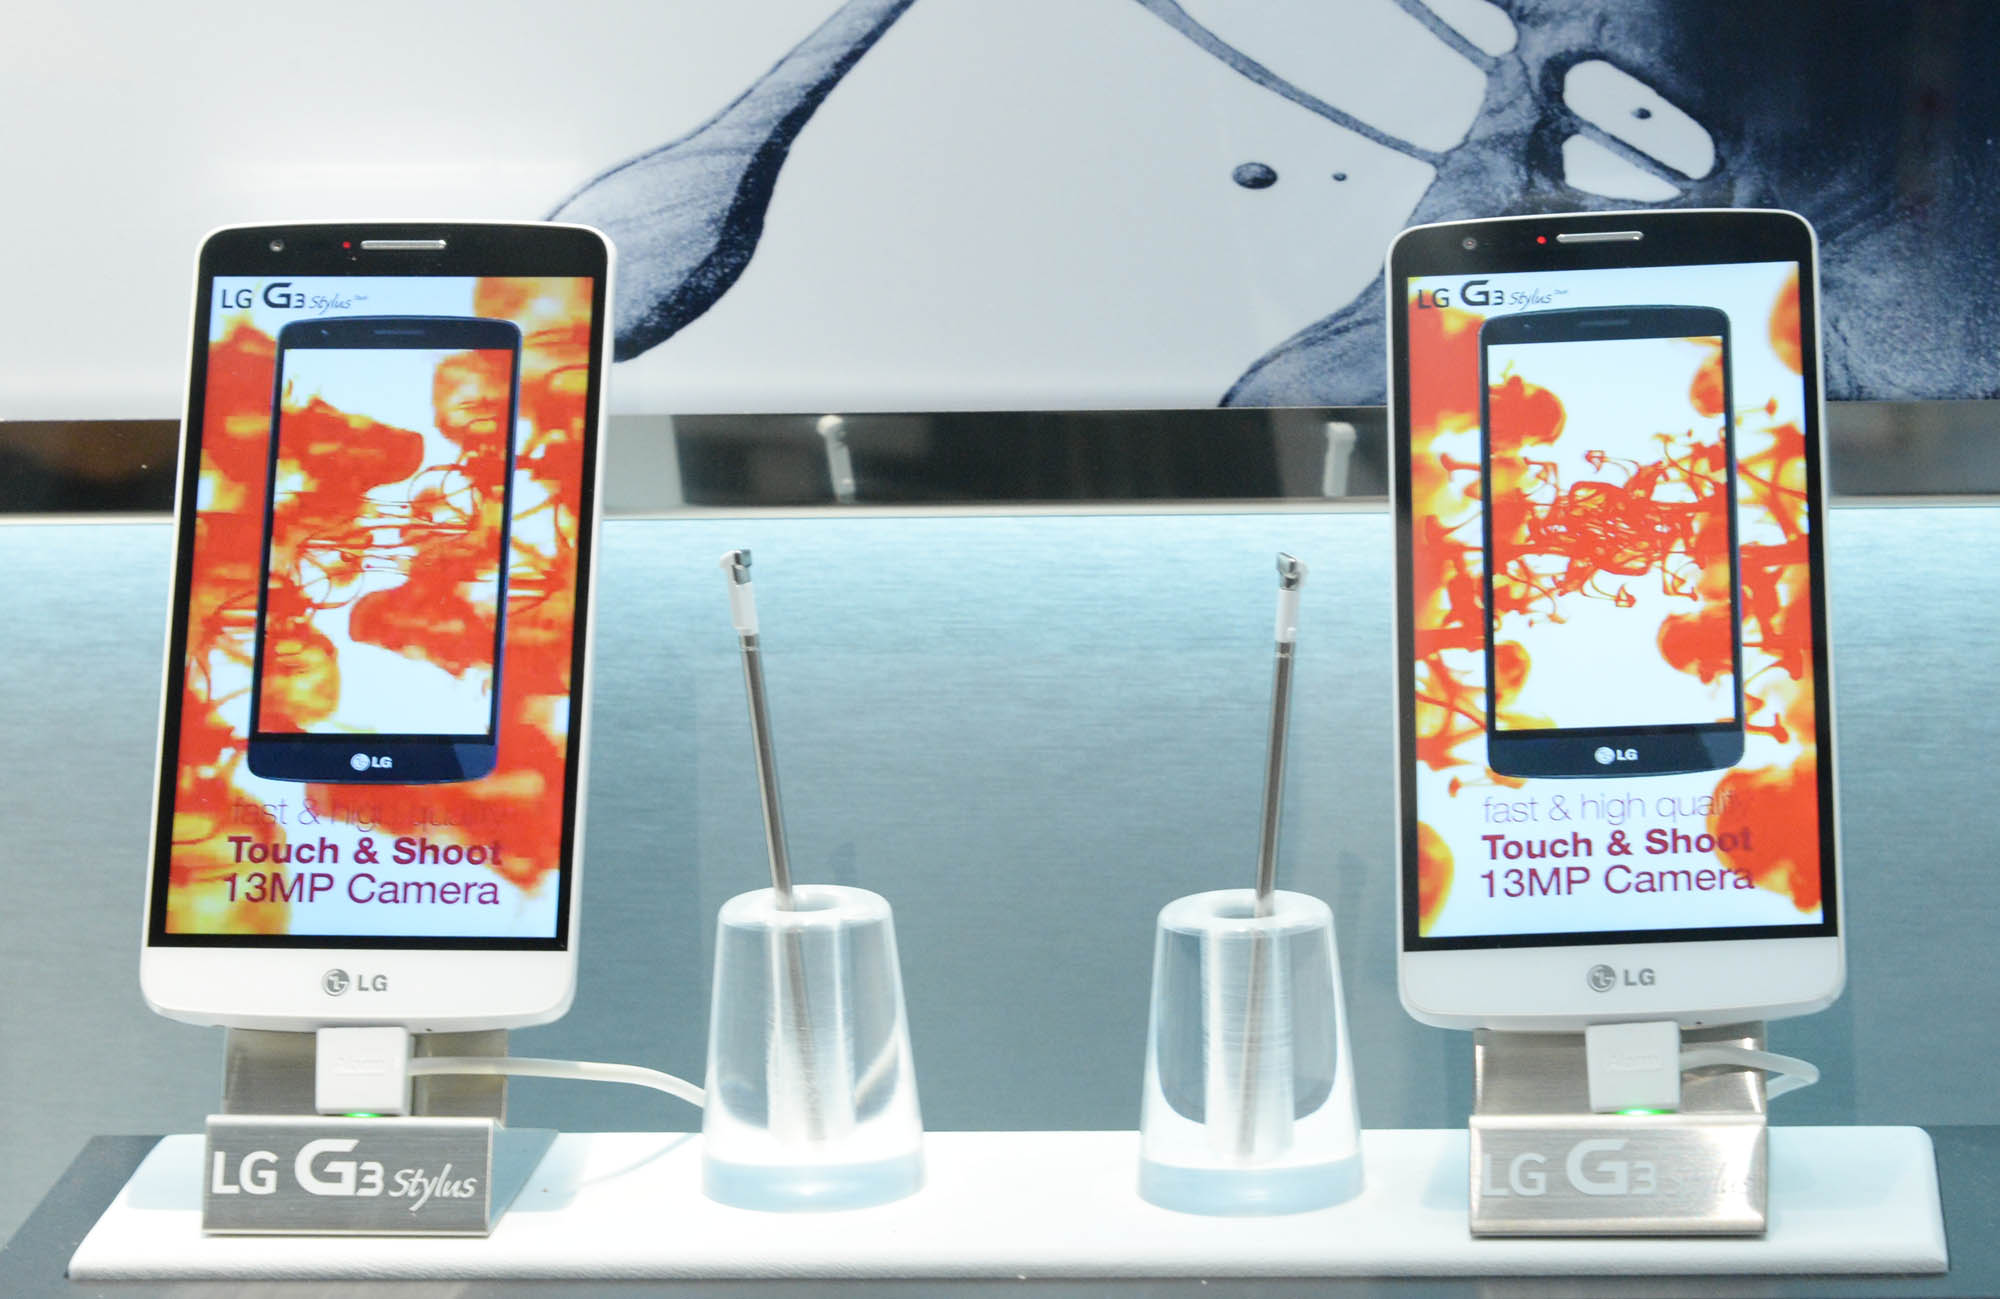 LG Electronics announced the global rollout of the LG G3 Stylus, a new pen-enabled smartphone that inherits the core DNA of the acclaimed LG G3. (image credit: LG Electronics)